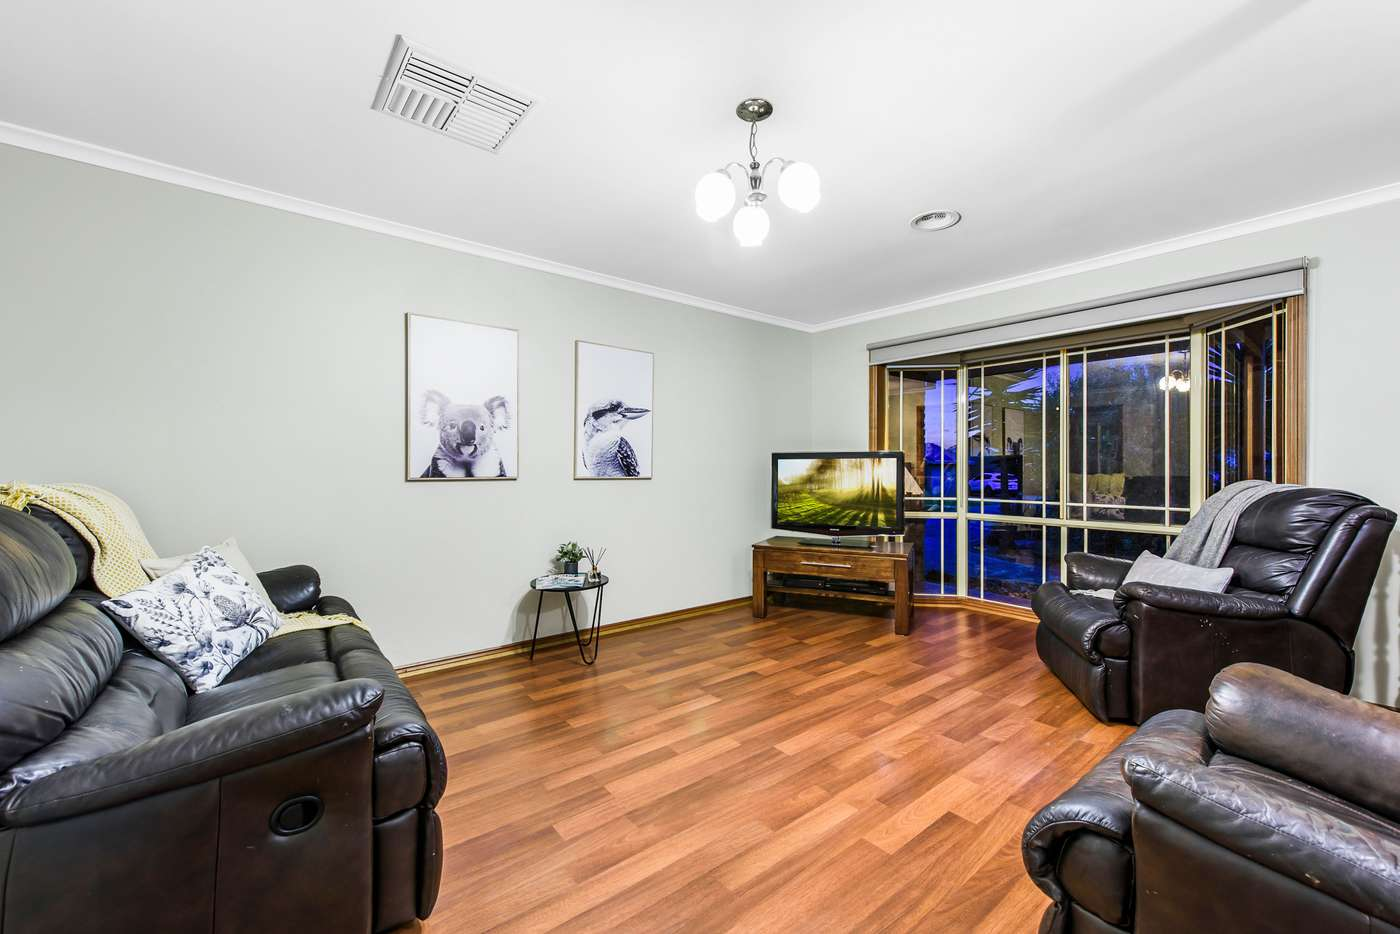 Sixth view of Homely house listing, 9 Sundew Close, Hillside VIC 3037